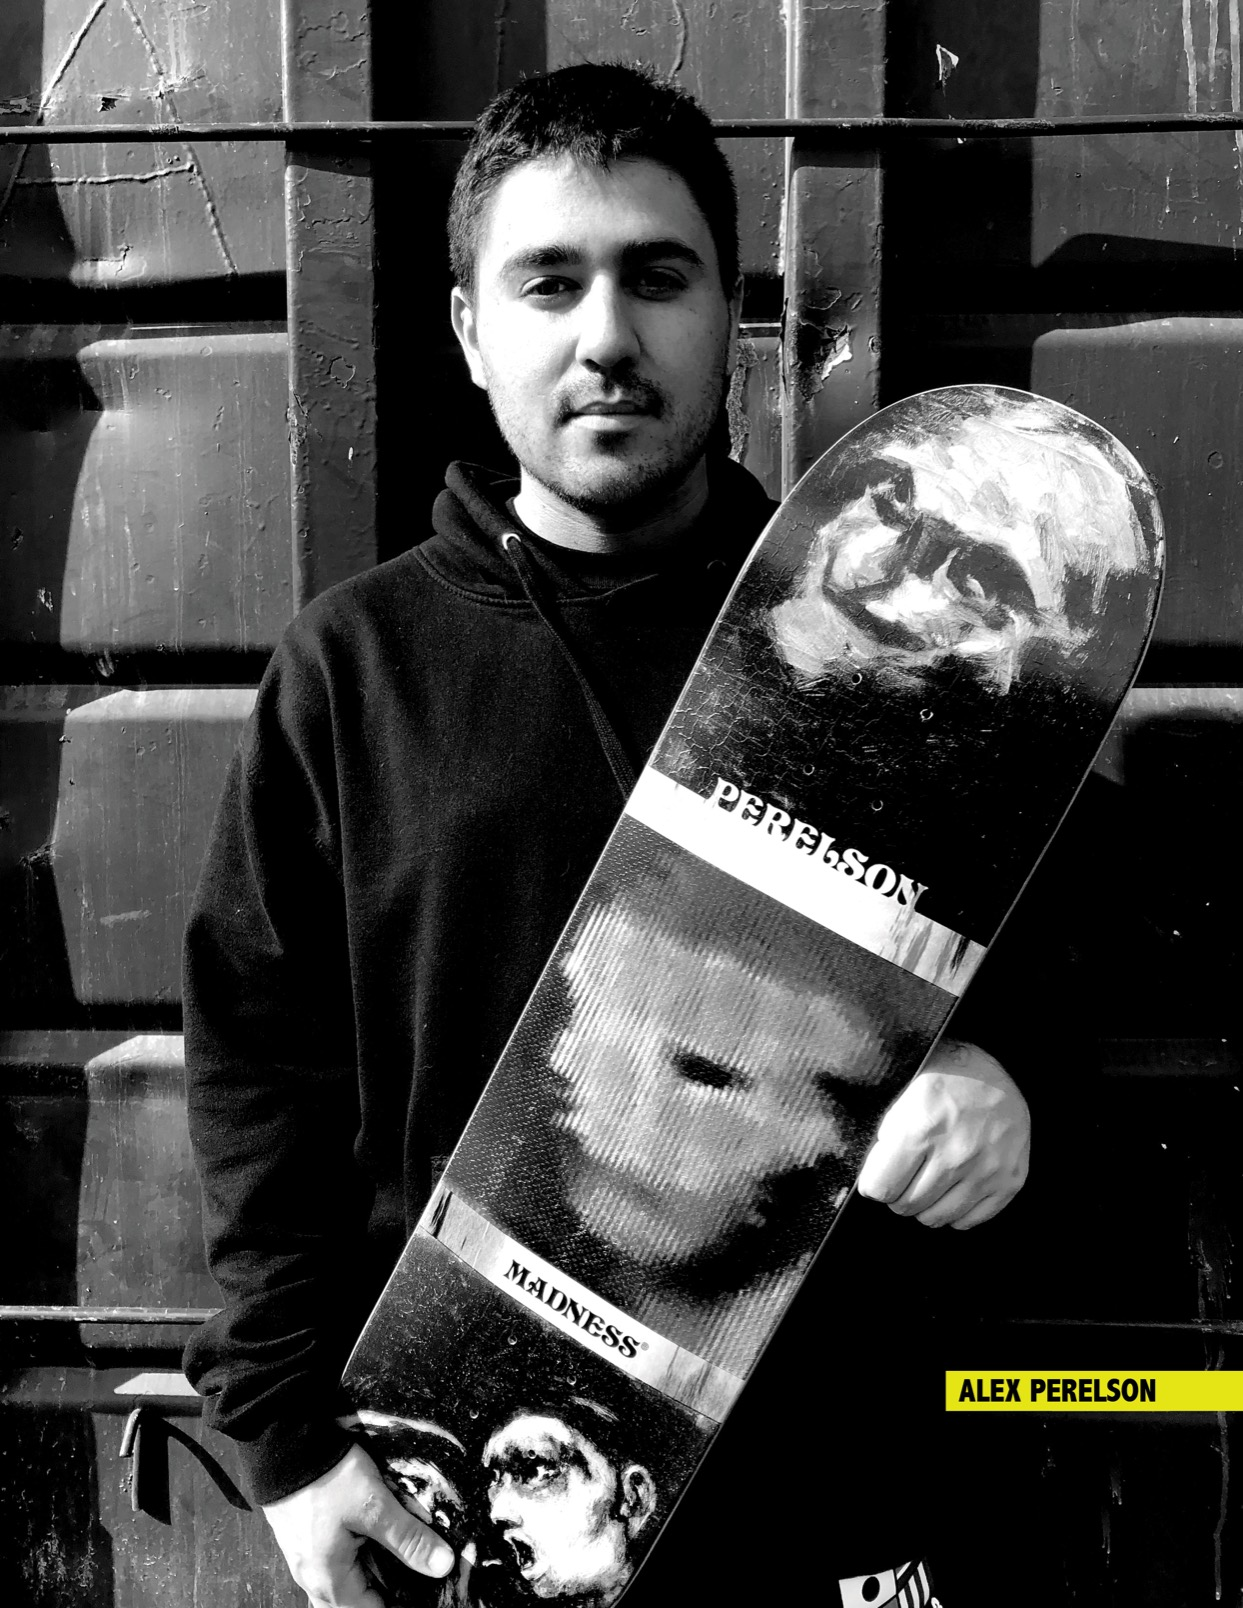 Madness_Skateboards_Alex_Perelson_Shape_Shifter_1.jpg